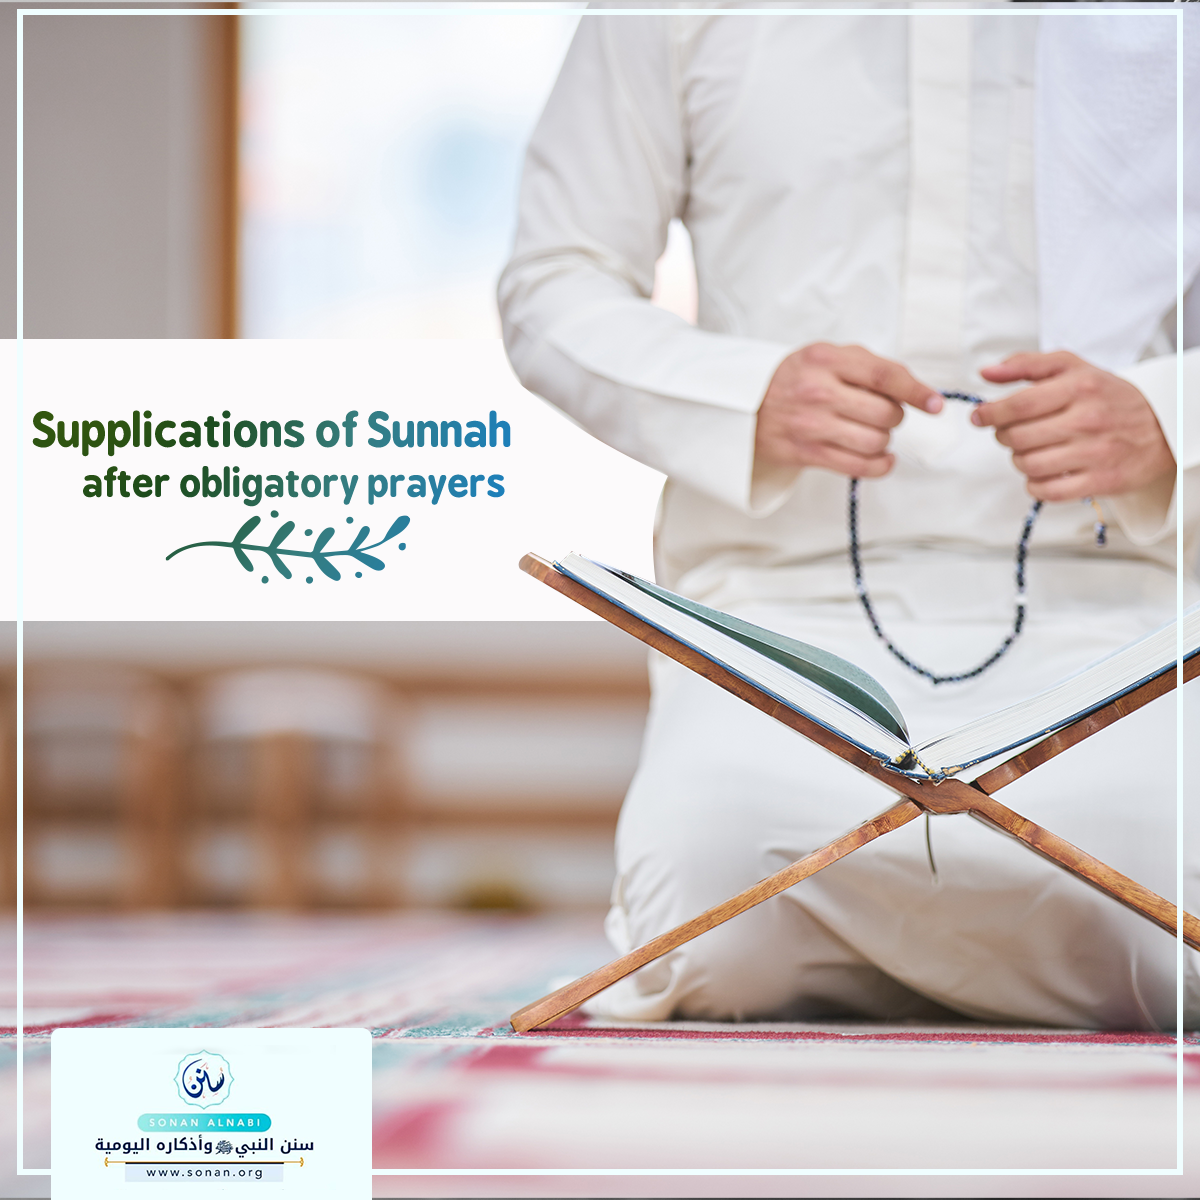 Supplications of Sunnah after obligatory prayers